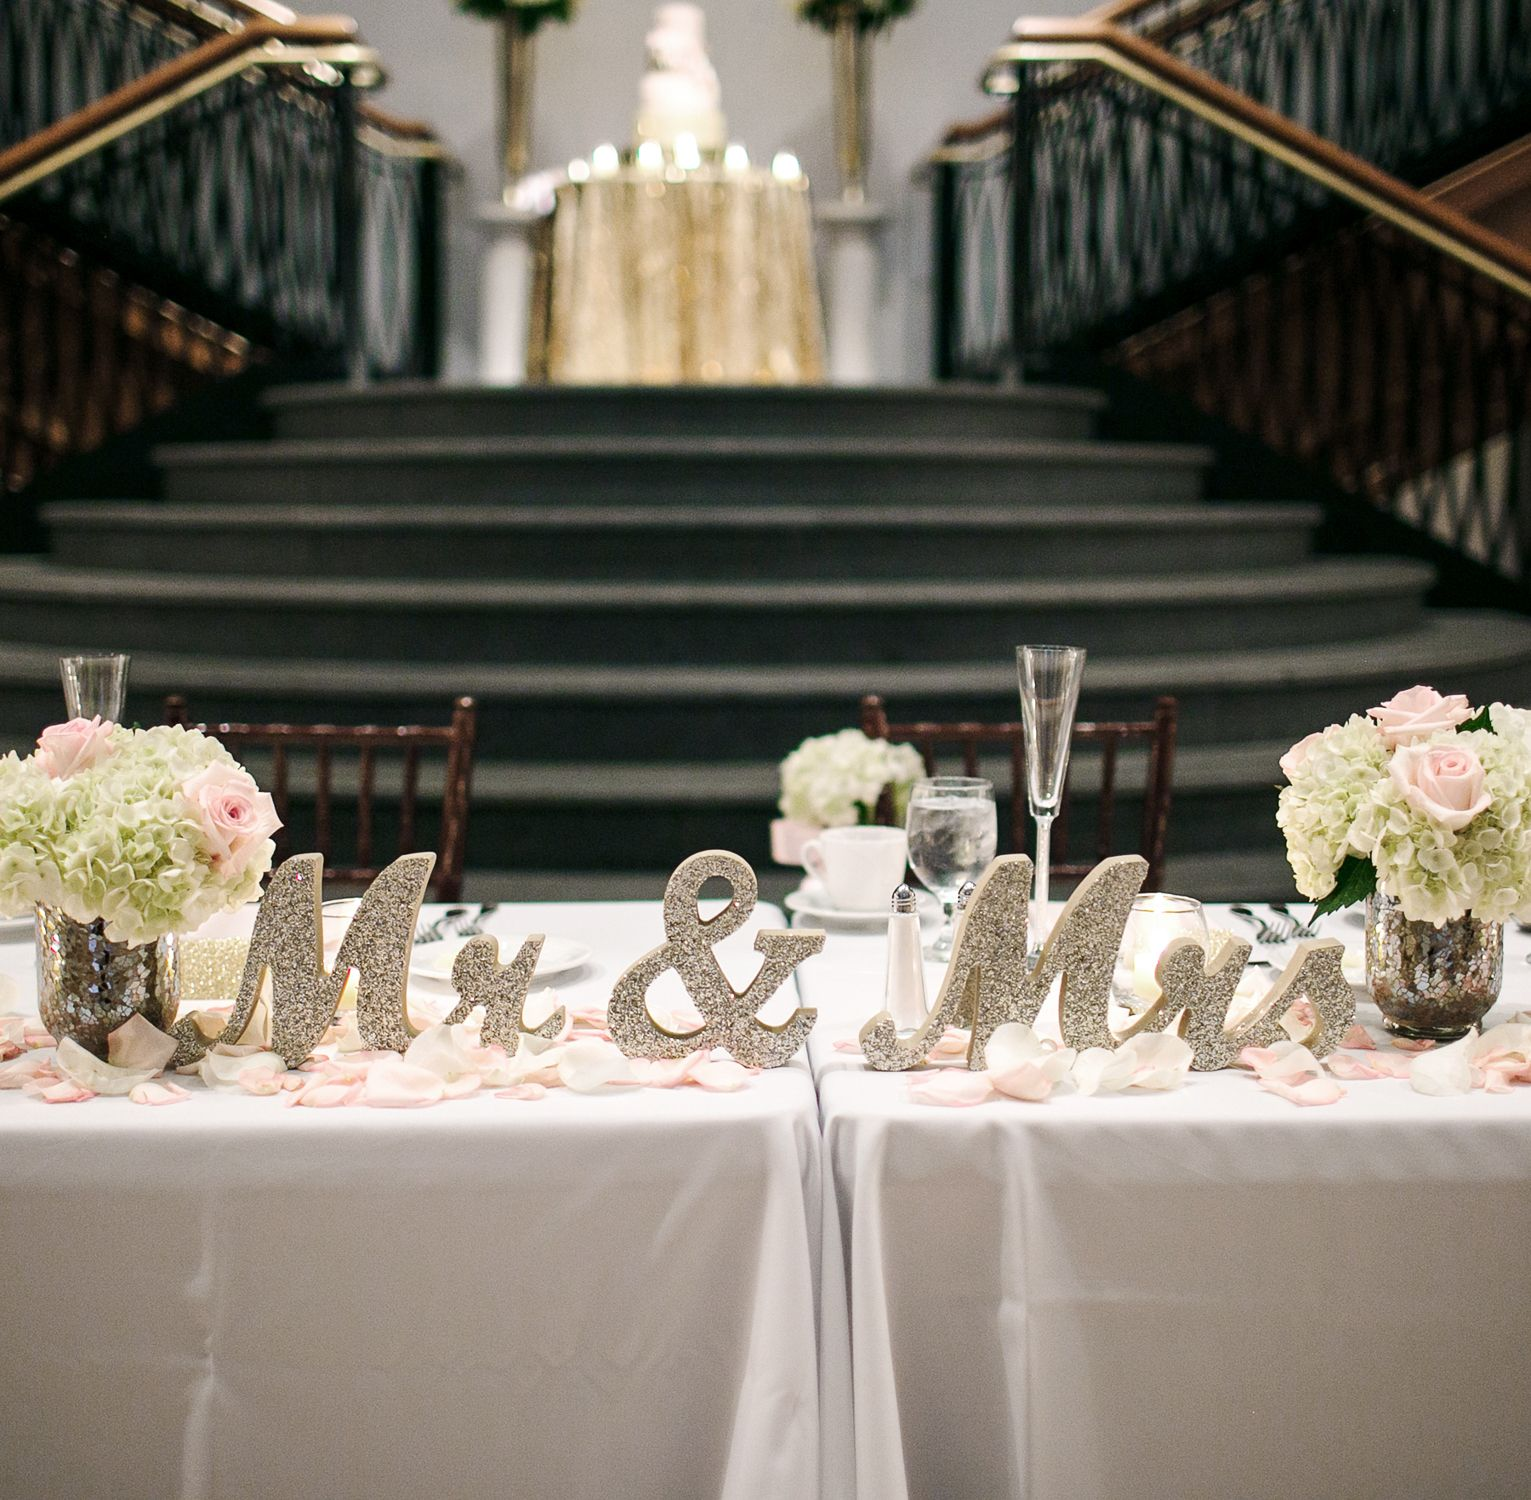 Wedding Head Table Decoration Ideas: Classy Sweetheart Table Ideas For The Bride And Groom